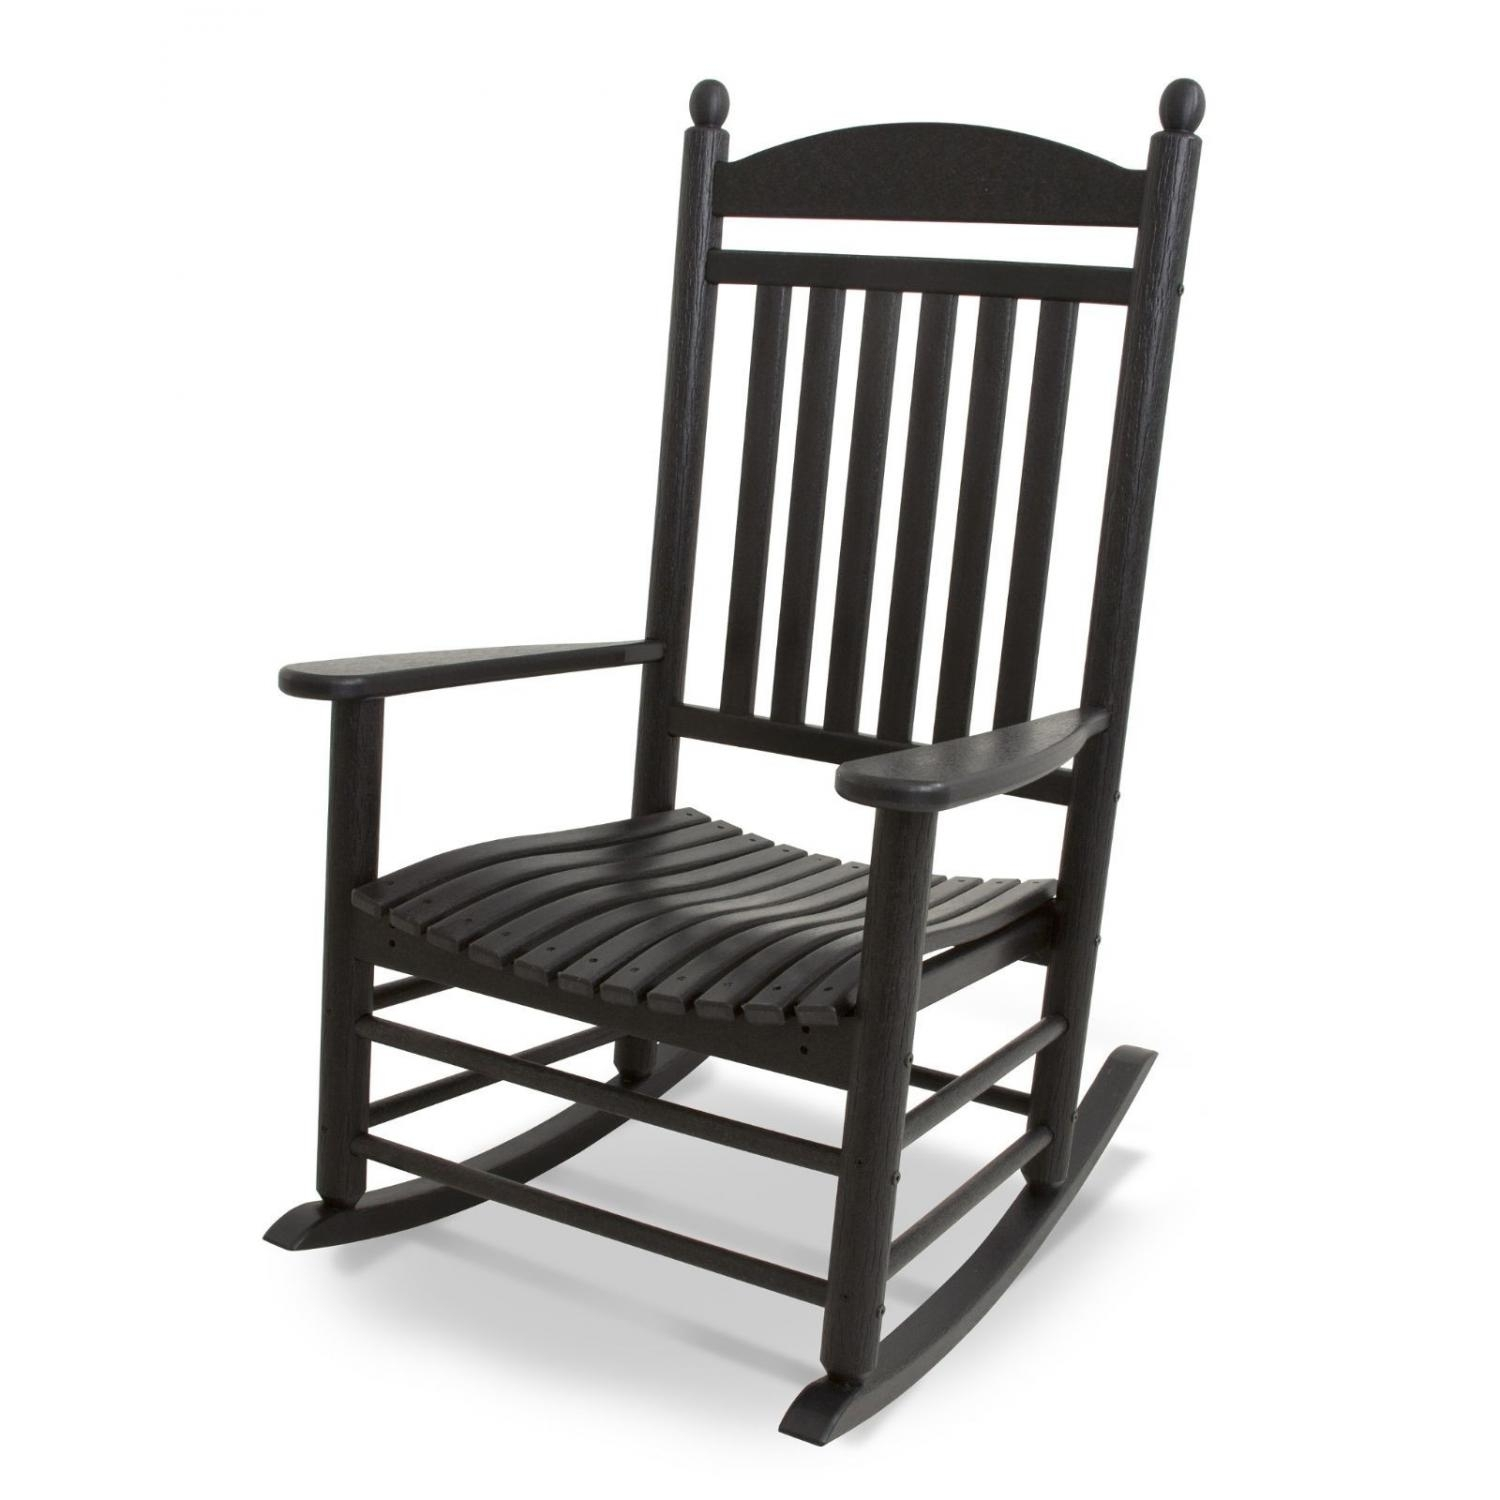 Inspiration about Polywood Jefferson Recycled Plastic Wood Patio Rocking Chair – Black Intended For Wooden Patio Rocking Chairs (#13 of 15)